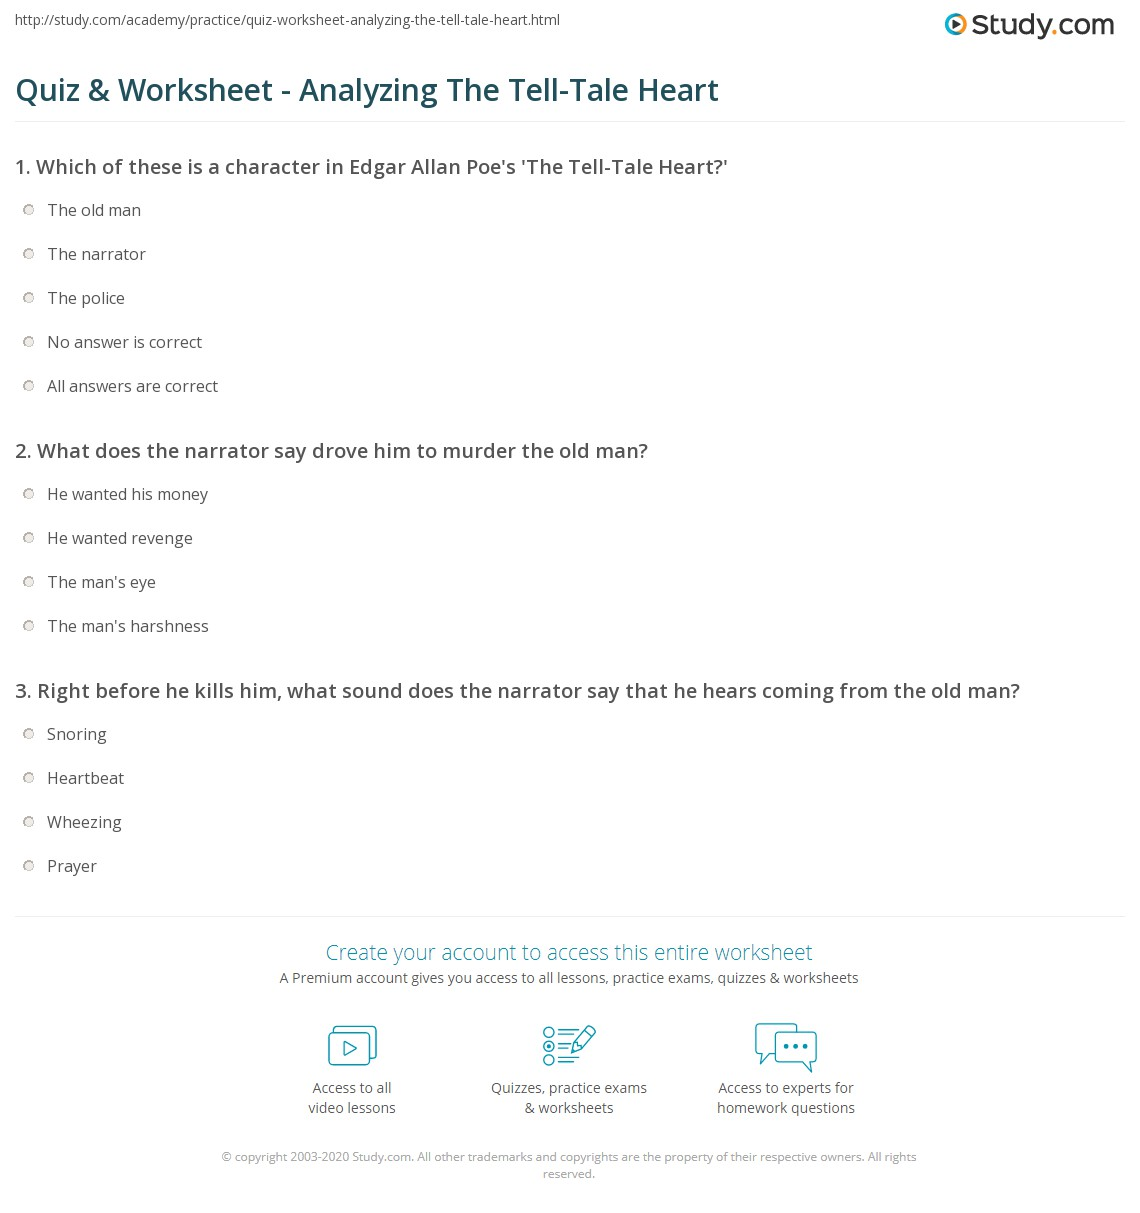 quiz worksheet analyzing the tell tale heart. Black Bedroom Furniture Sets. Home Design Ideas